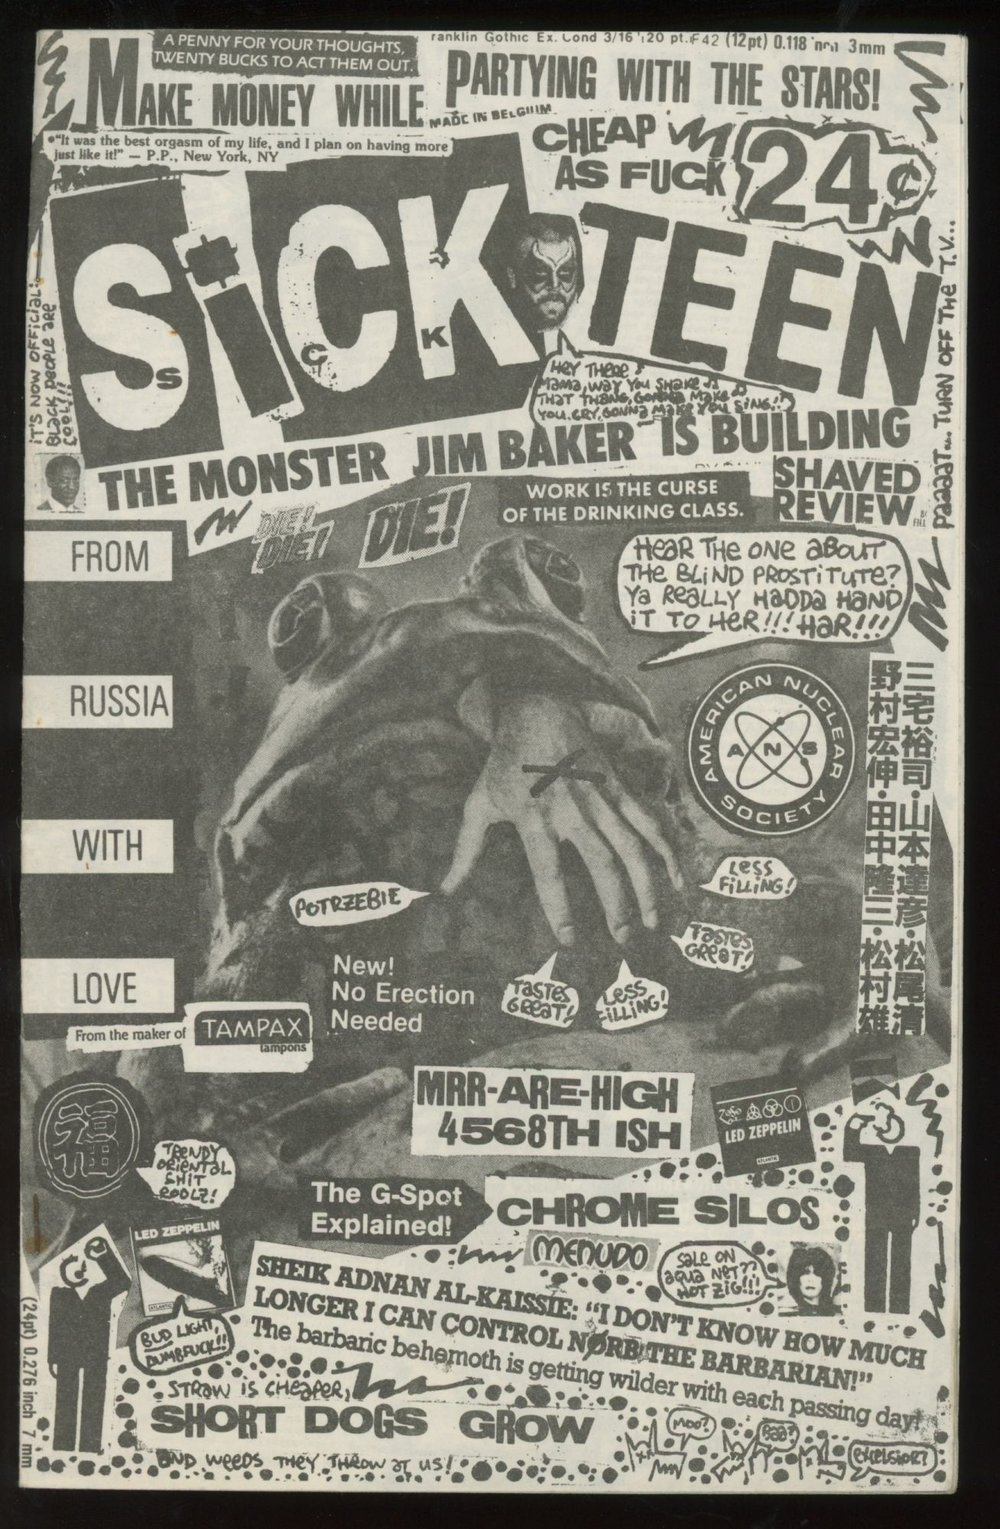 An issue of Sick Teen from 1986. Green Bay, WI: Geek & Destroy Graphics, [1986]. 8vo, saddle-stapled wraps.